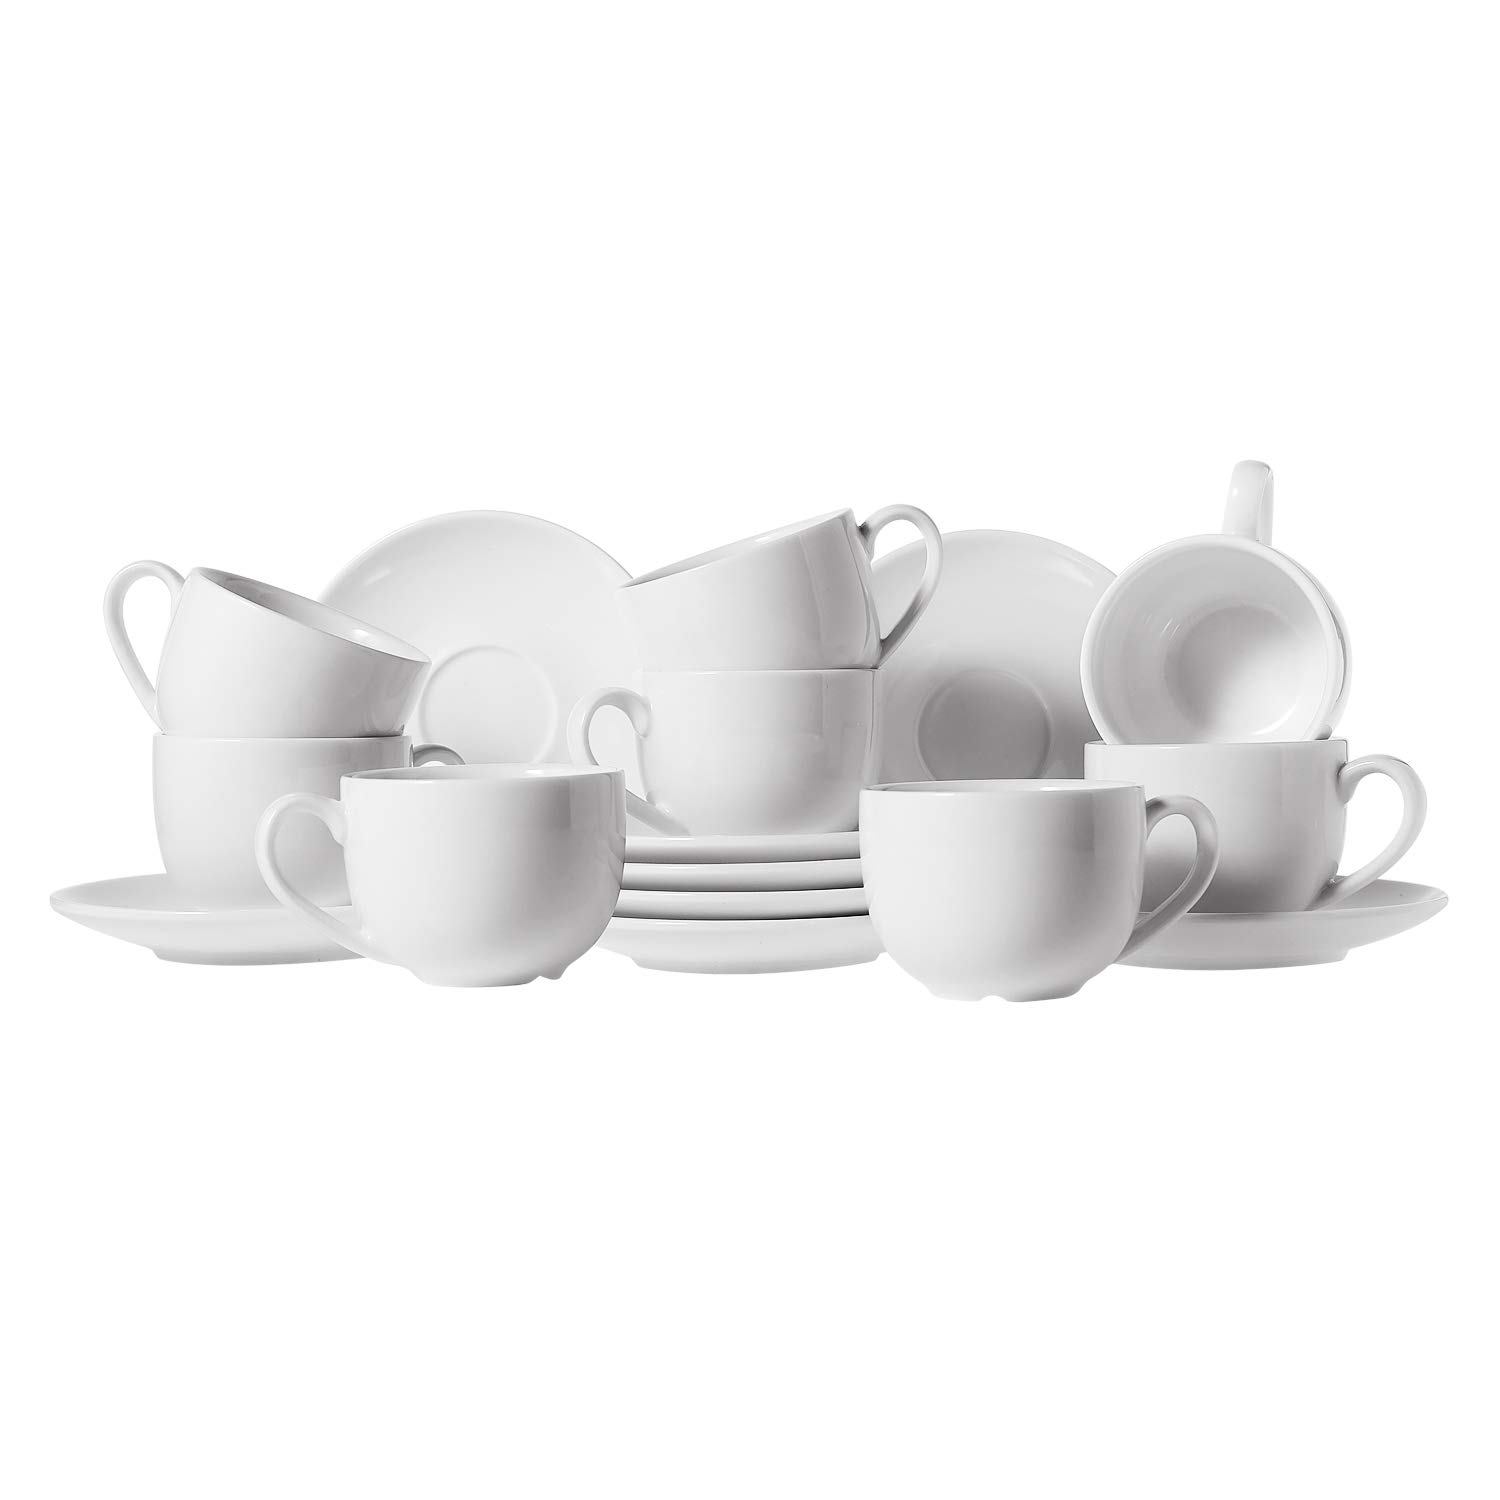 ComSaf Porcelain Espresso Cups and Saucers, 3 ounce Demitasse Cup Set for Coffee, Tea - White, Set of 8